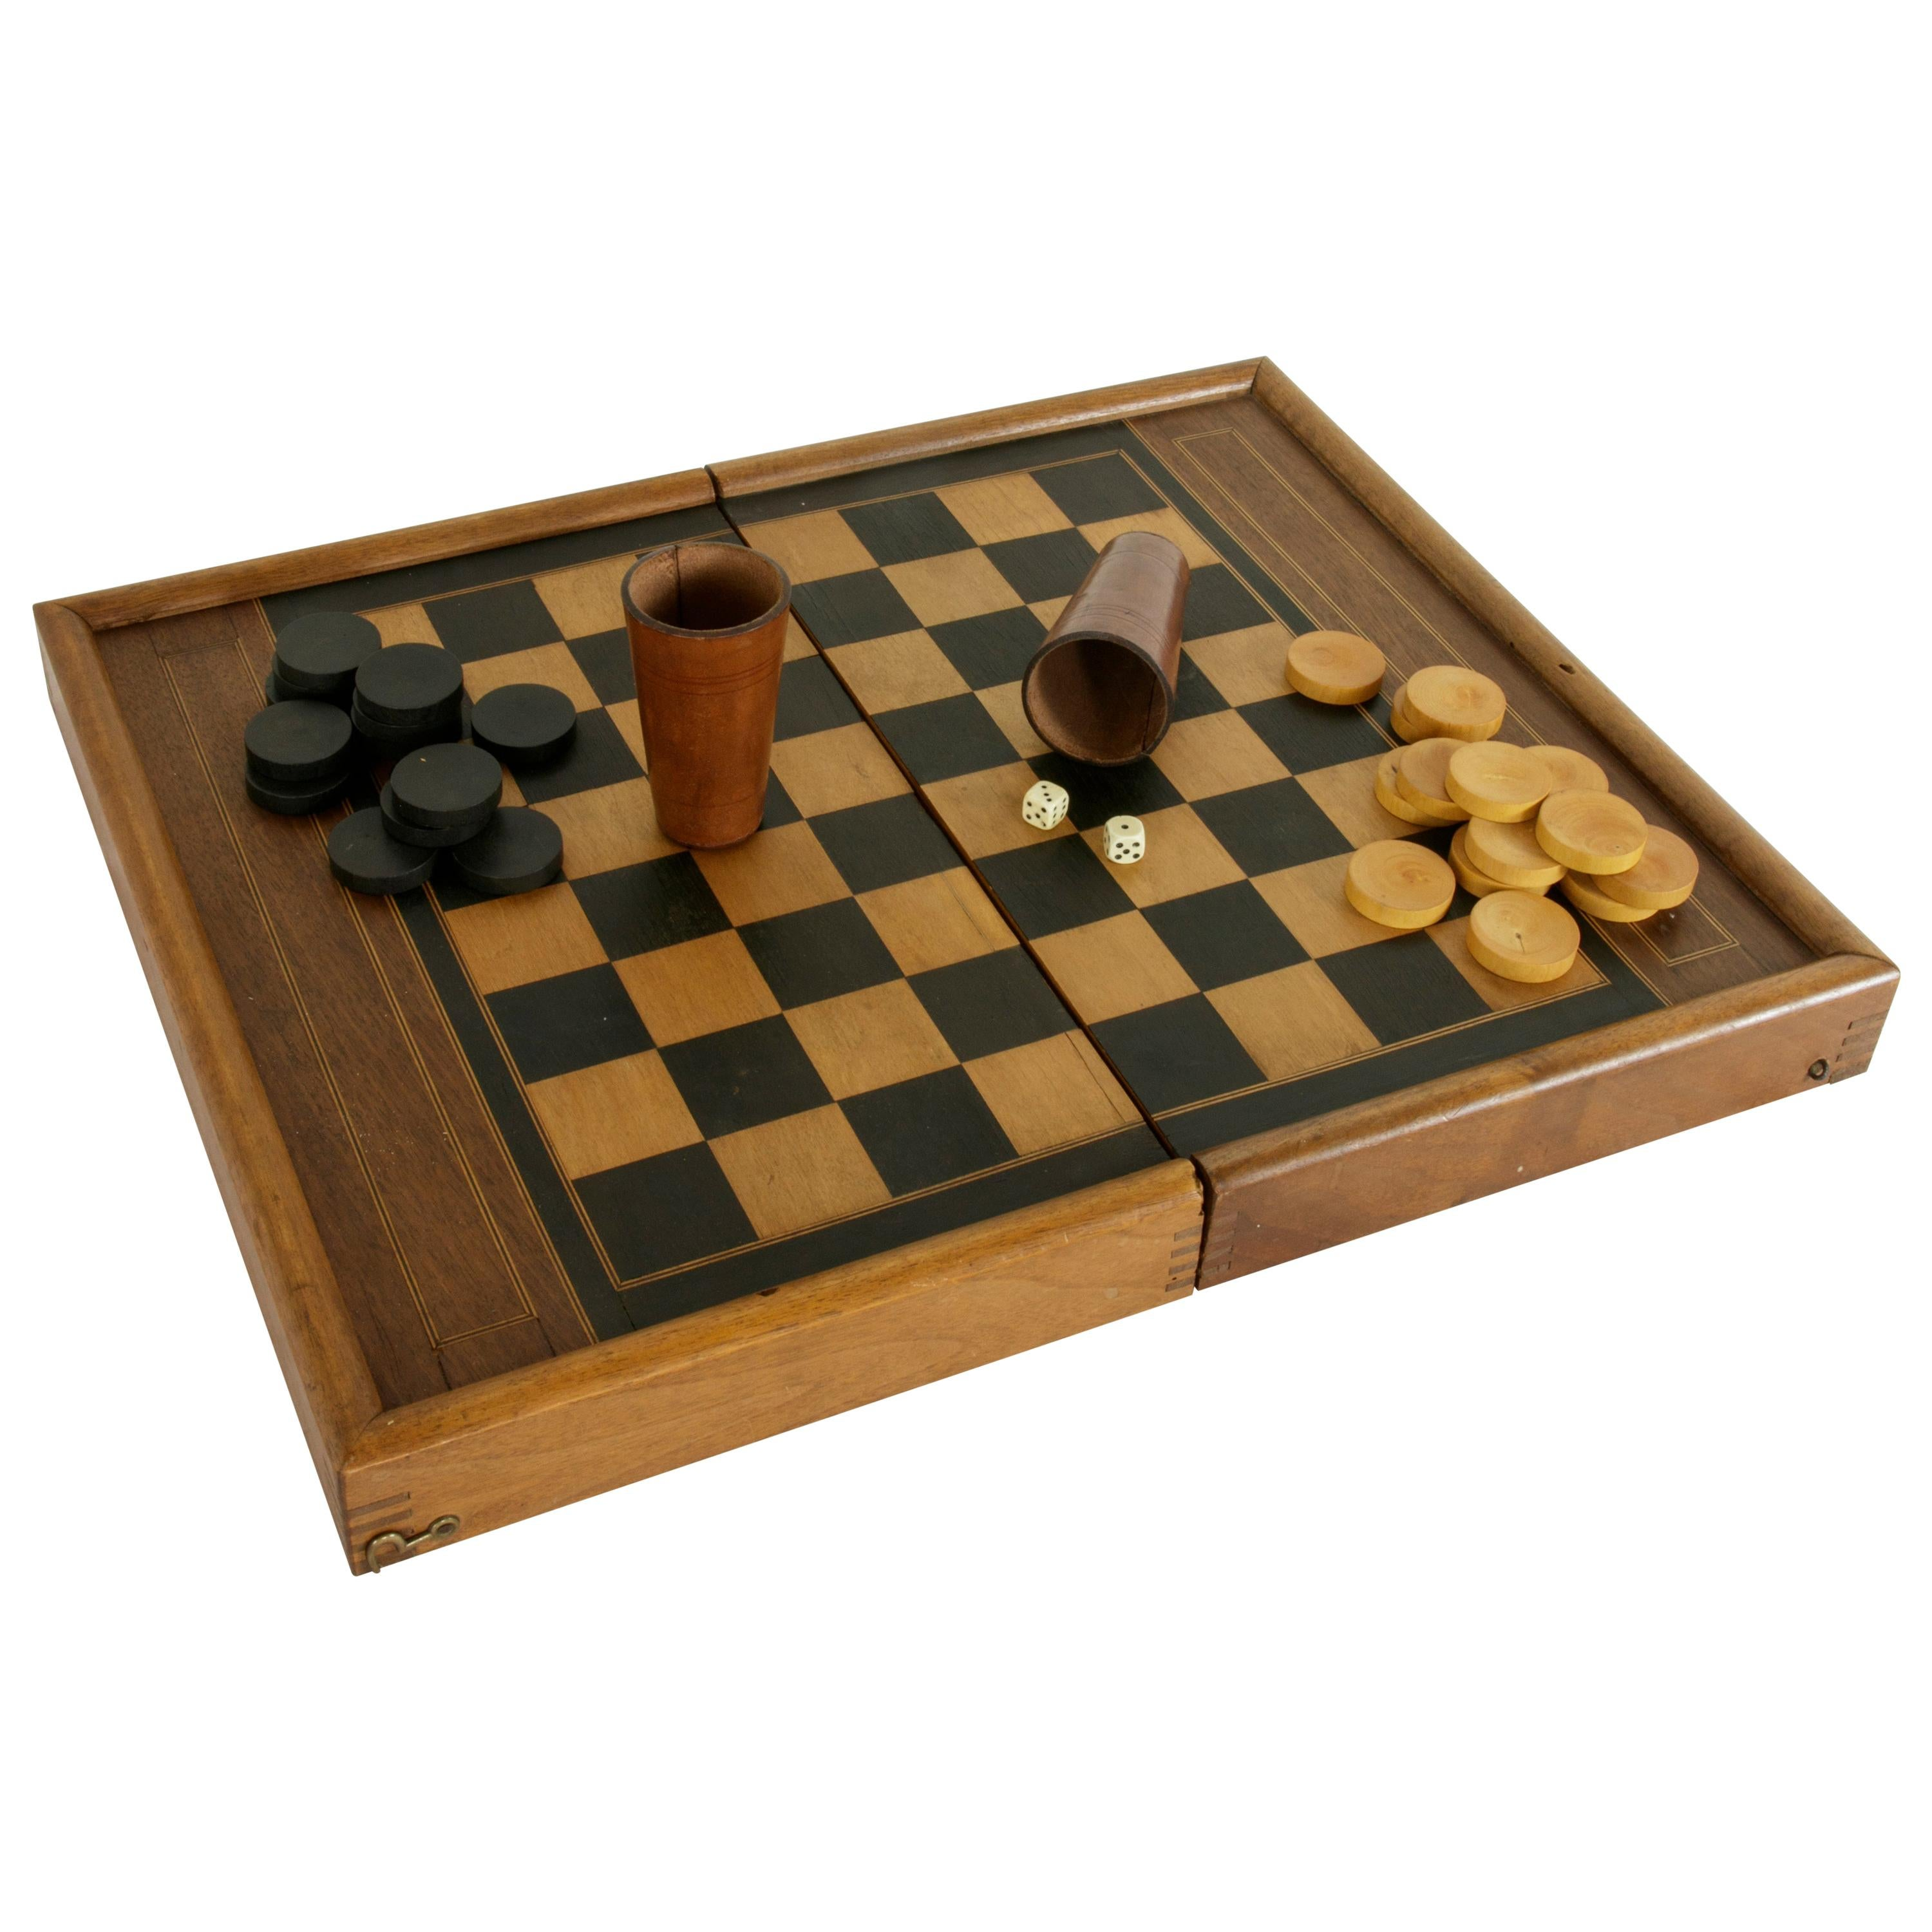 Antique and Vintage Game Boards - 109 For Sale at 1stdibs